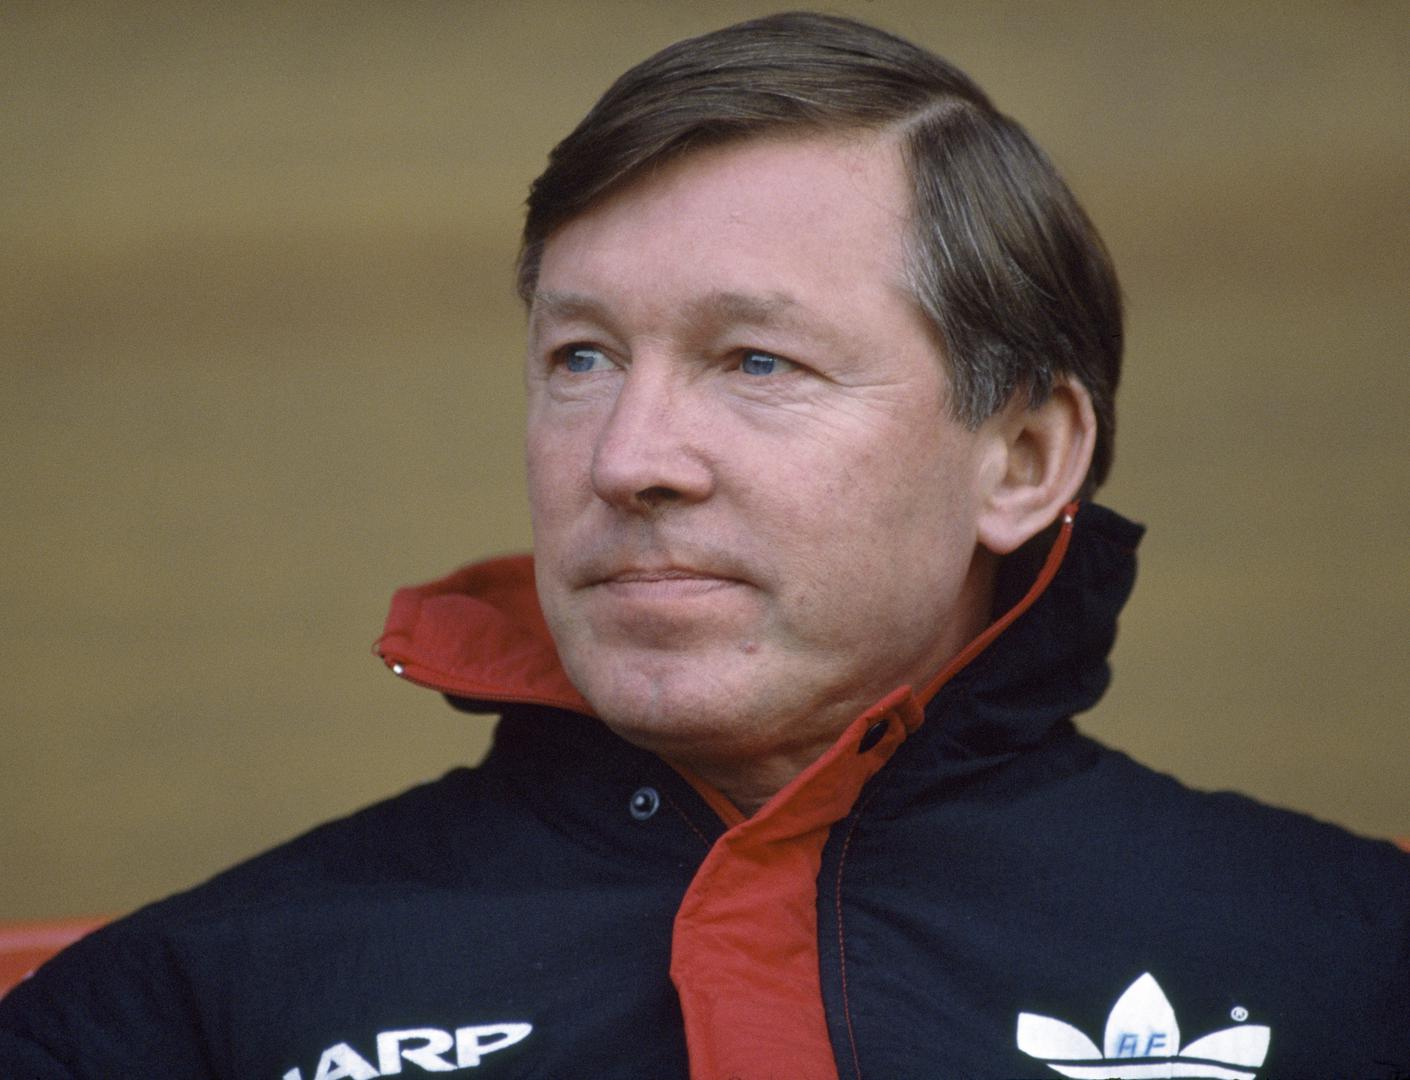 Alex Ferguson during the 1989/90 season.